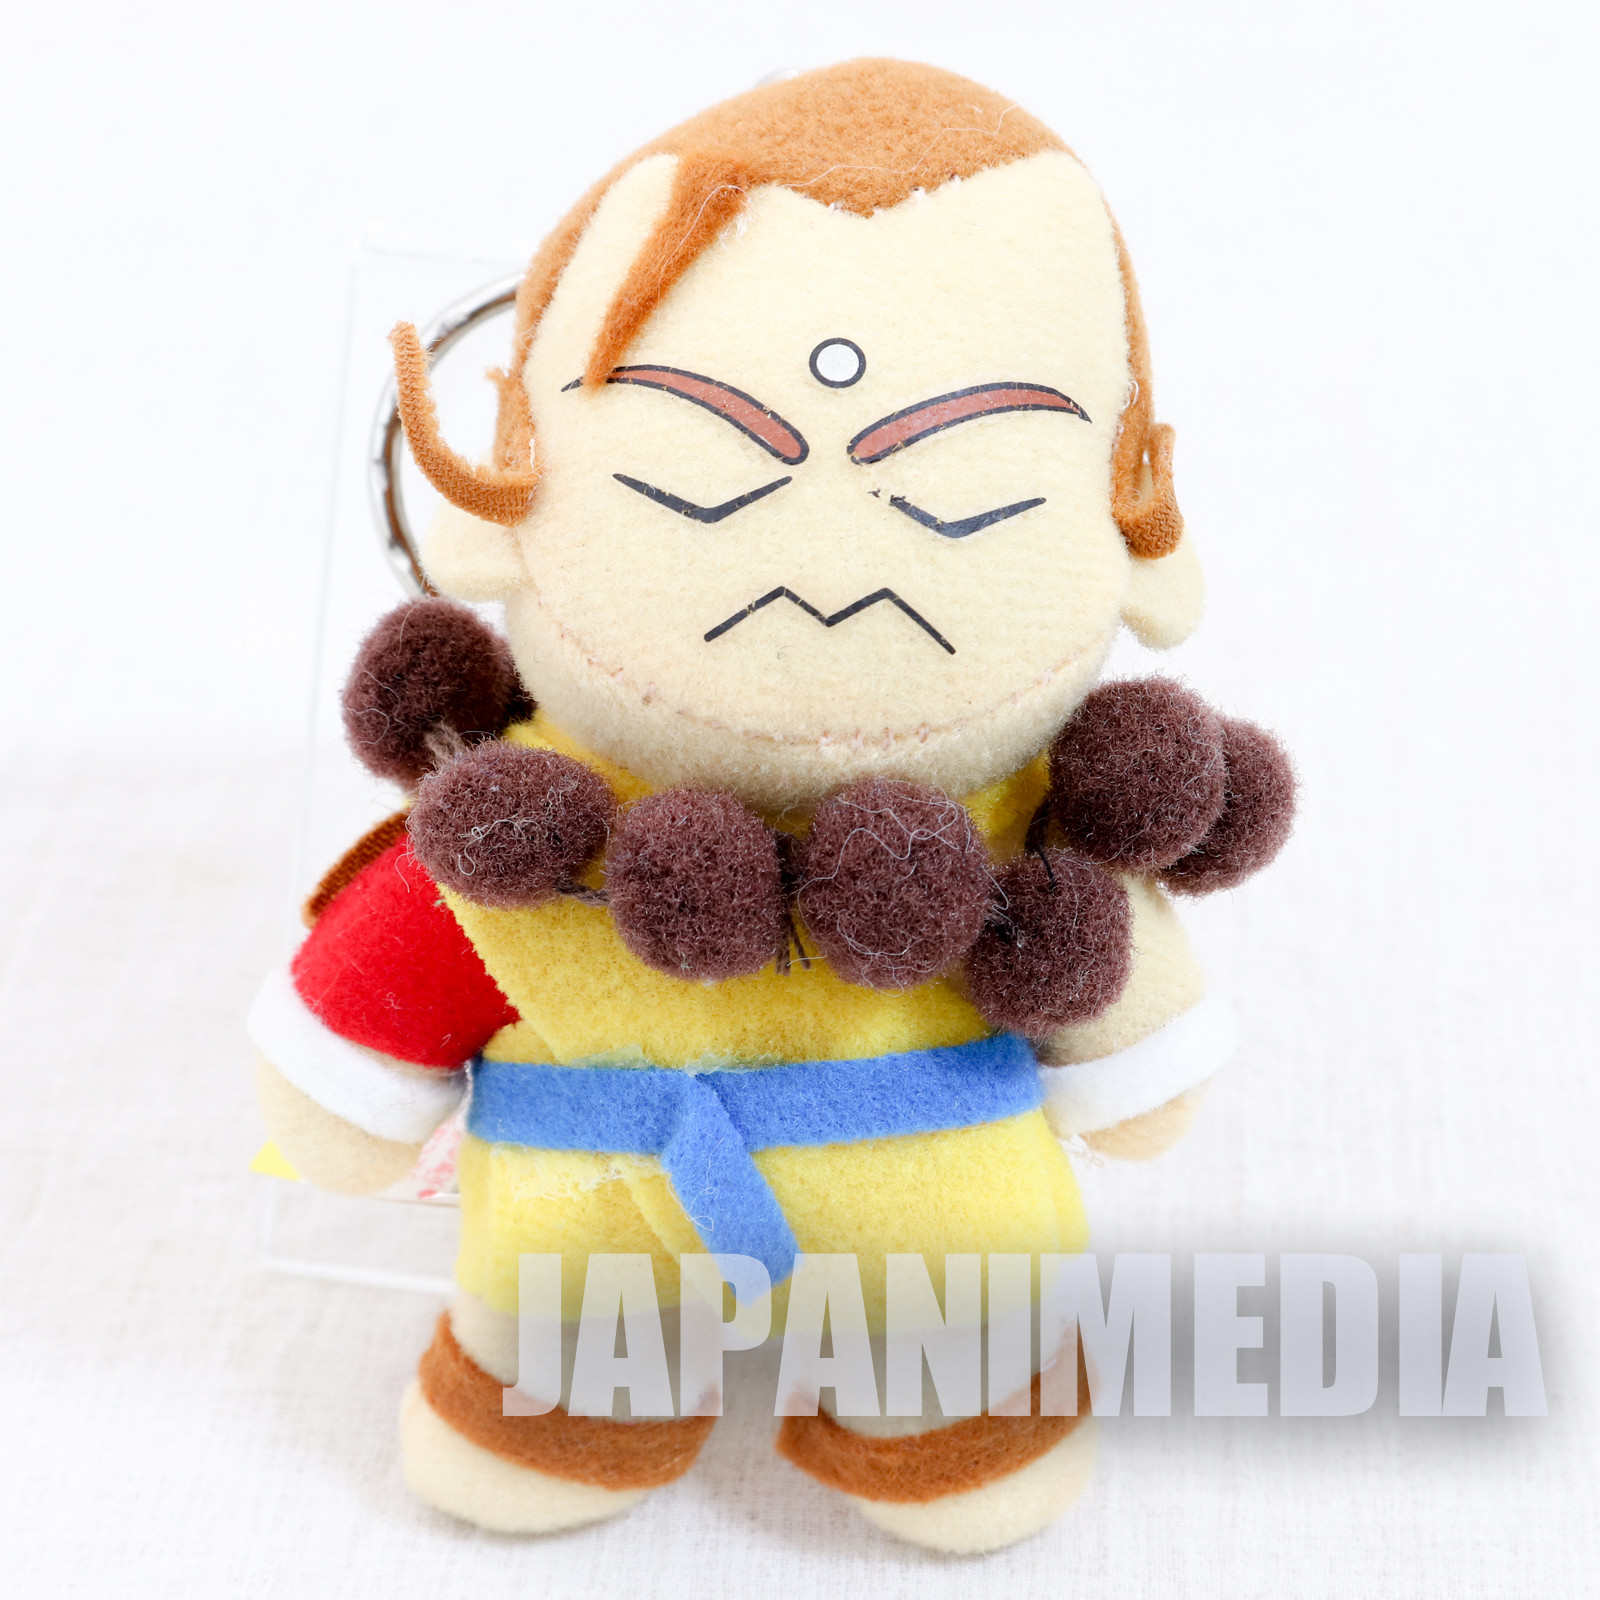 Darkstalkers (Vampire) Donovan Baine Small Plush Doll Keychain HUNTER SAVIOR